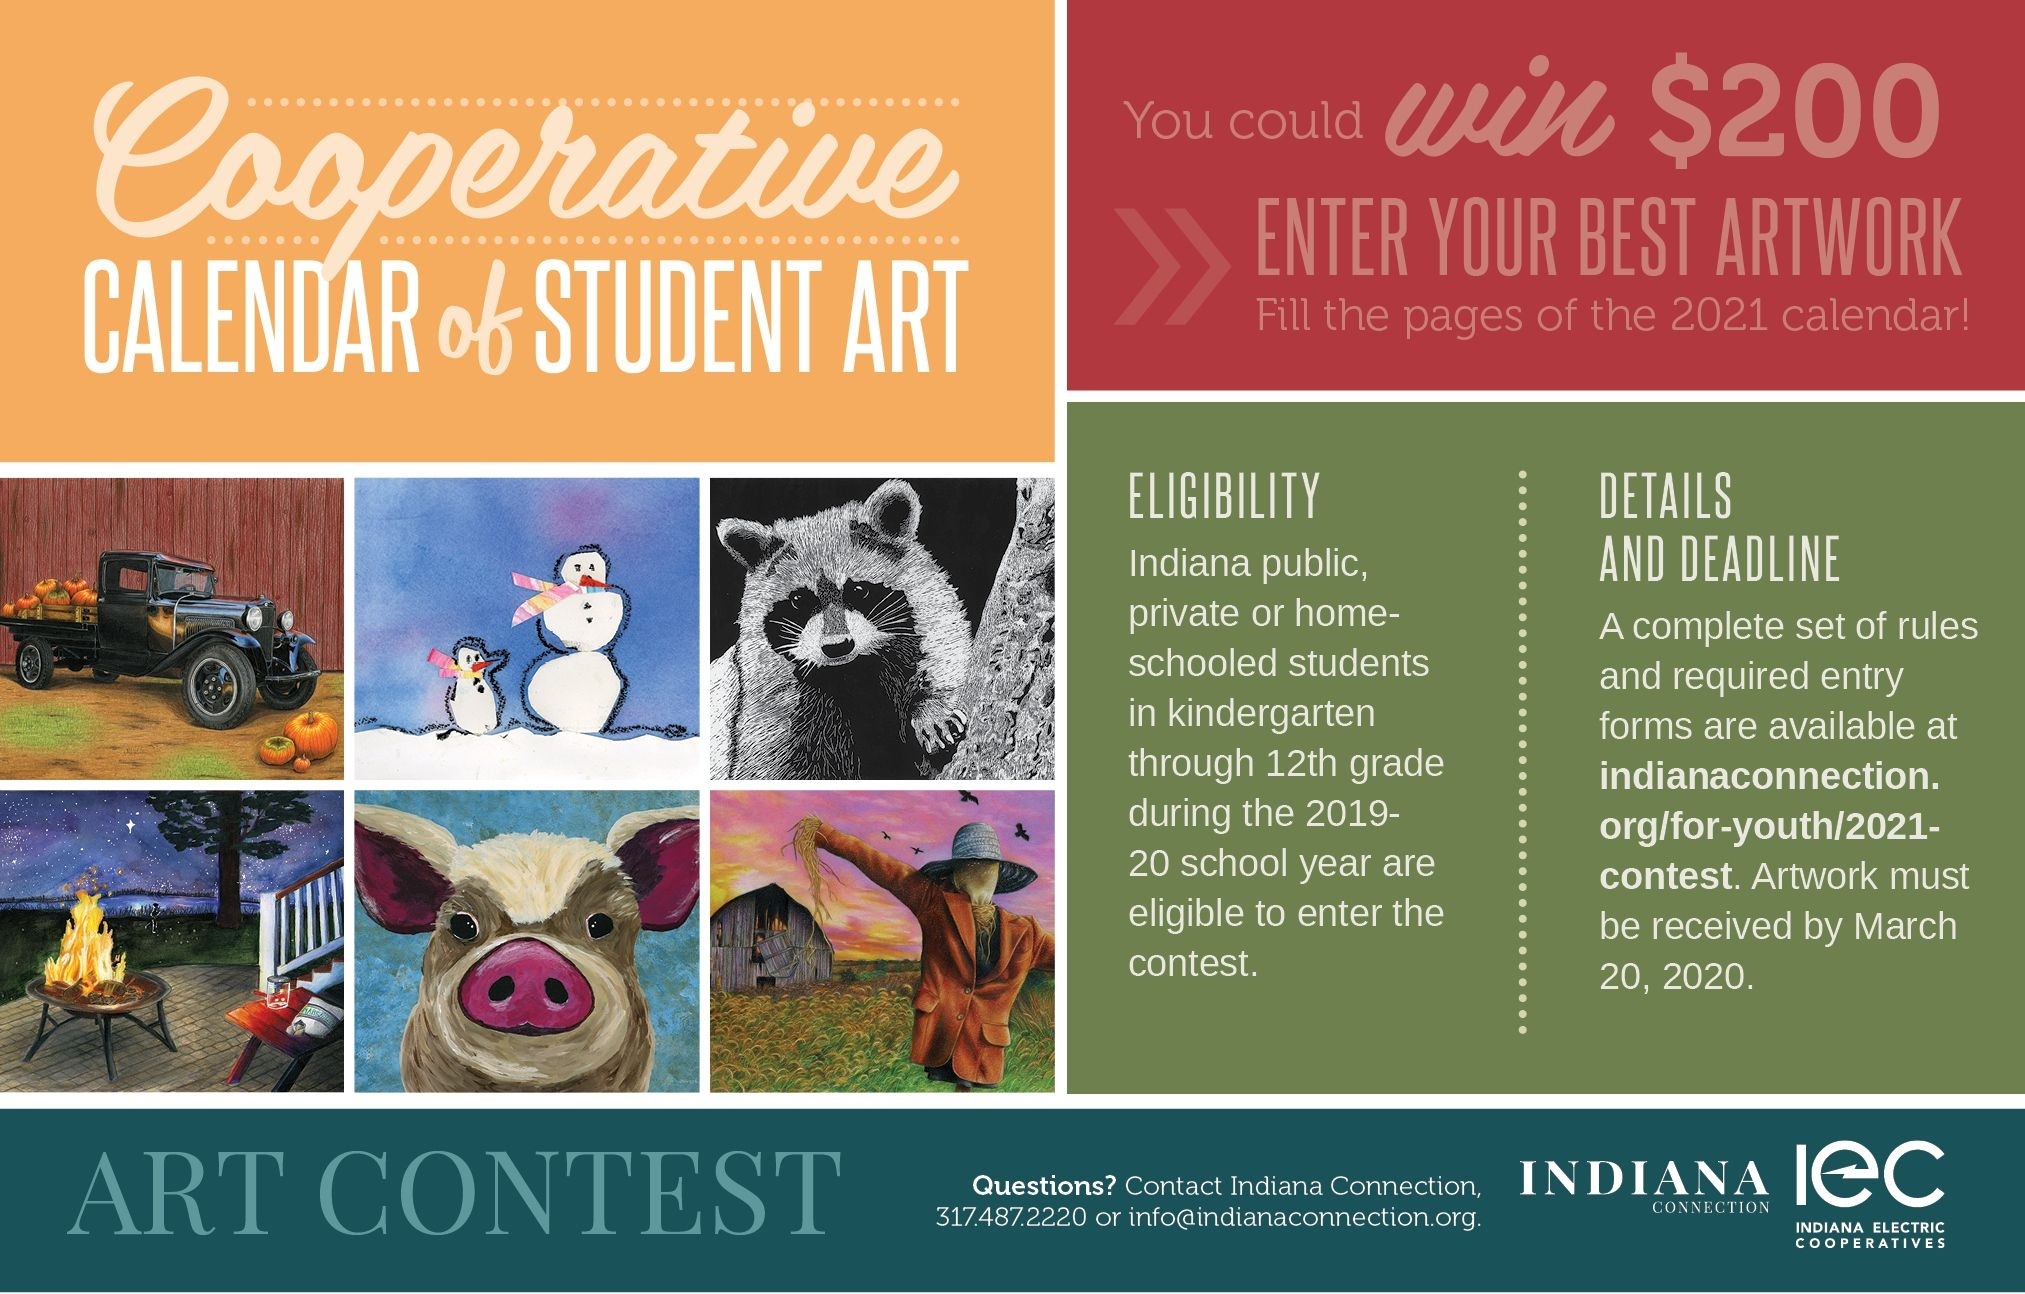 Enter The Cooperative Calendar Of Student Art Contest